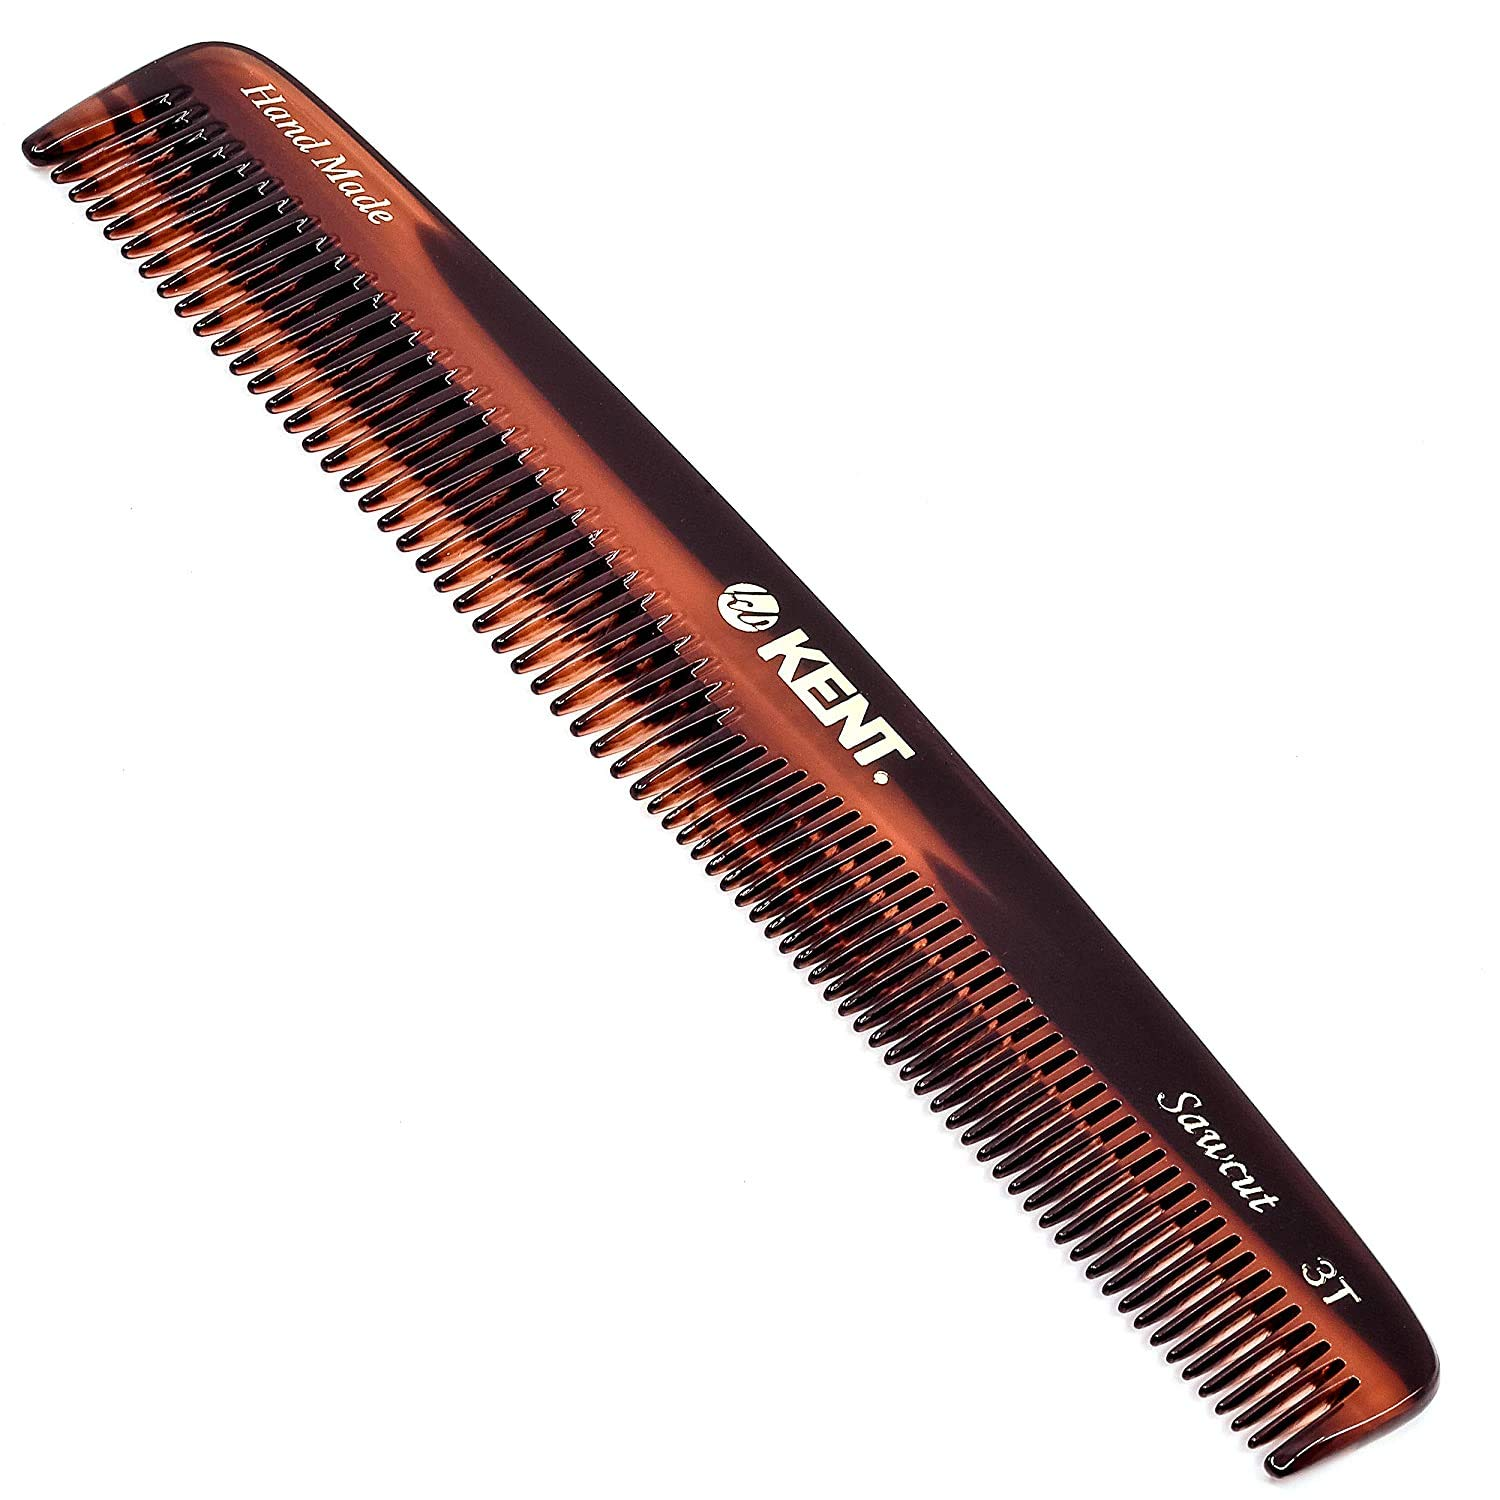 Kent 3T 6.5 Inch Double Tooth Hair Dressing Comb, Fine and Wide Tooth Dresser Comb For Hair, Beard and Mustache, Coarse and Fine Hair Styling Grooming Comb for Men, Women and Kids. Made in England